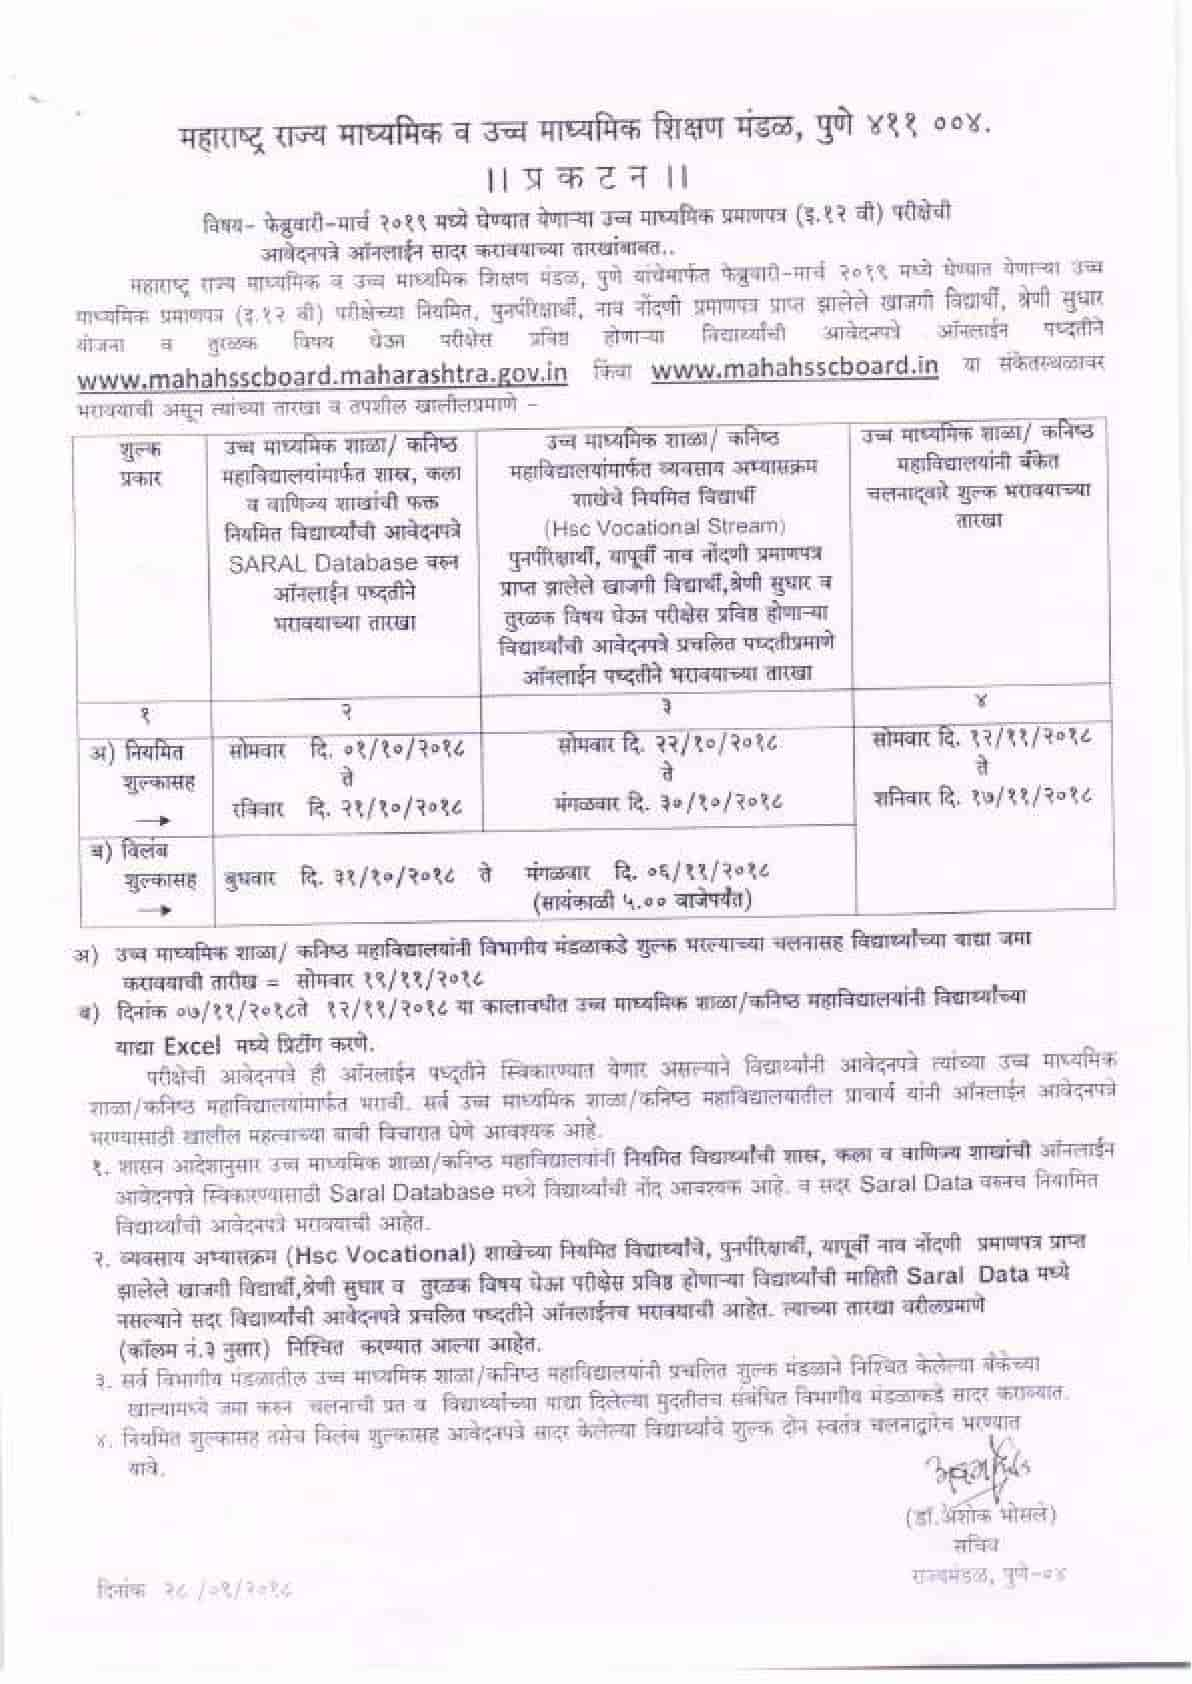 98b6fc35afaf7f182c90052e4779395d Online Application Form For Birth Certificate In Maharashtra on